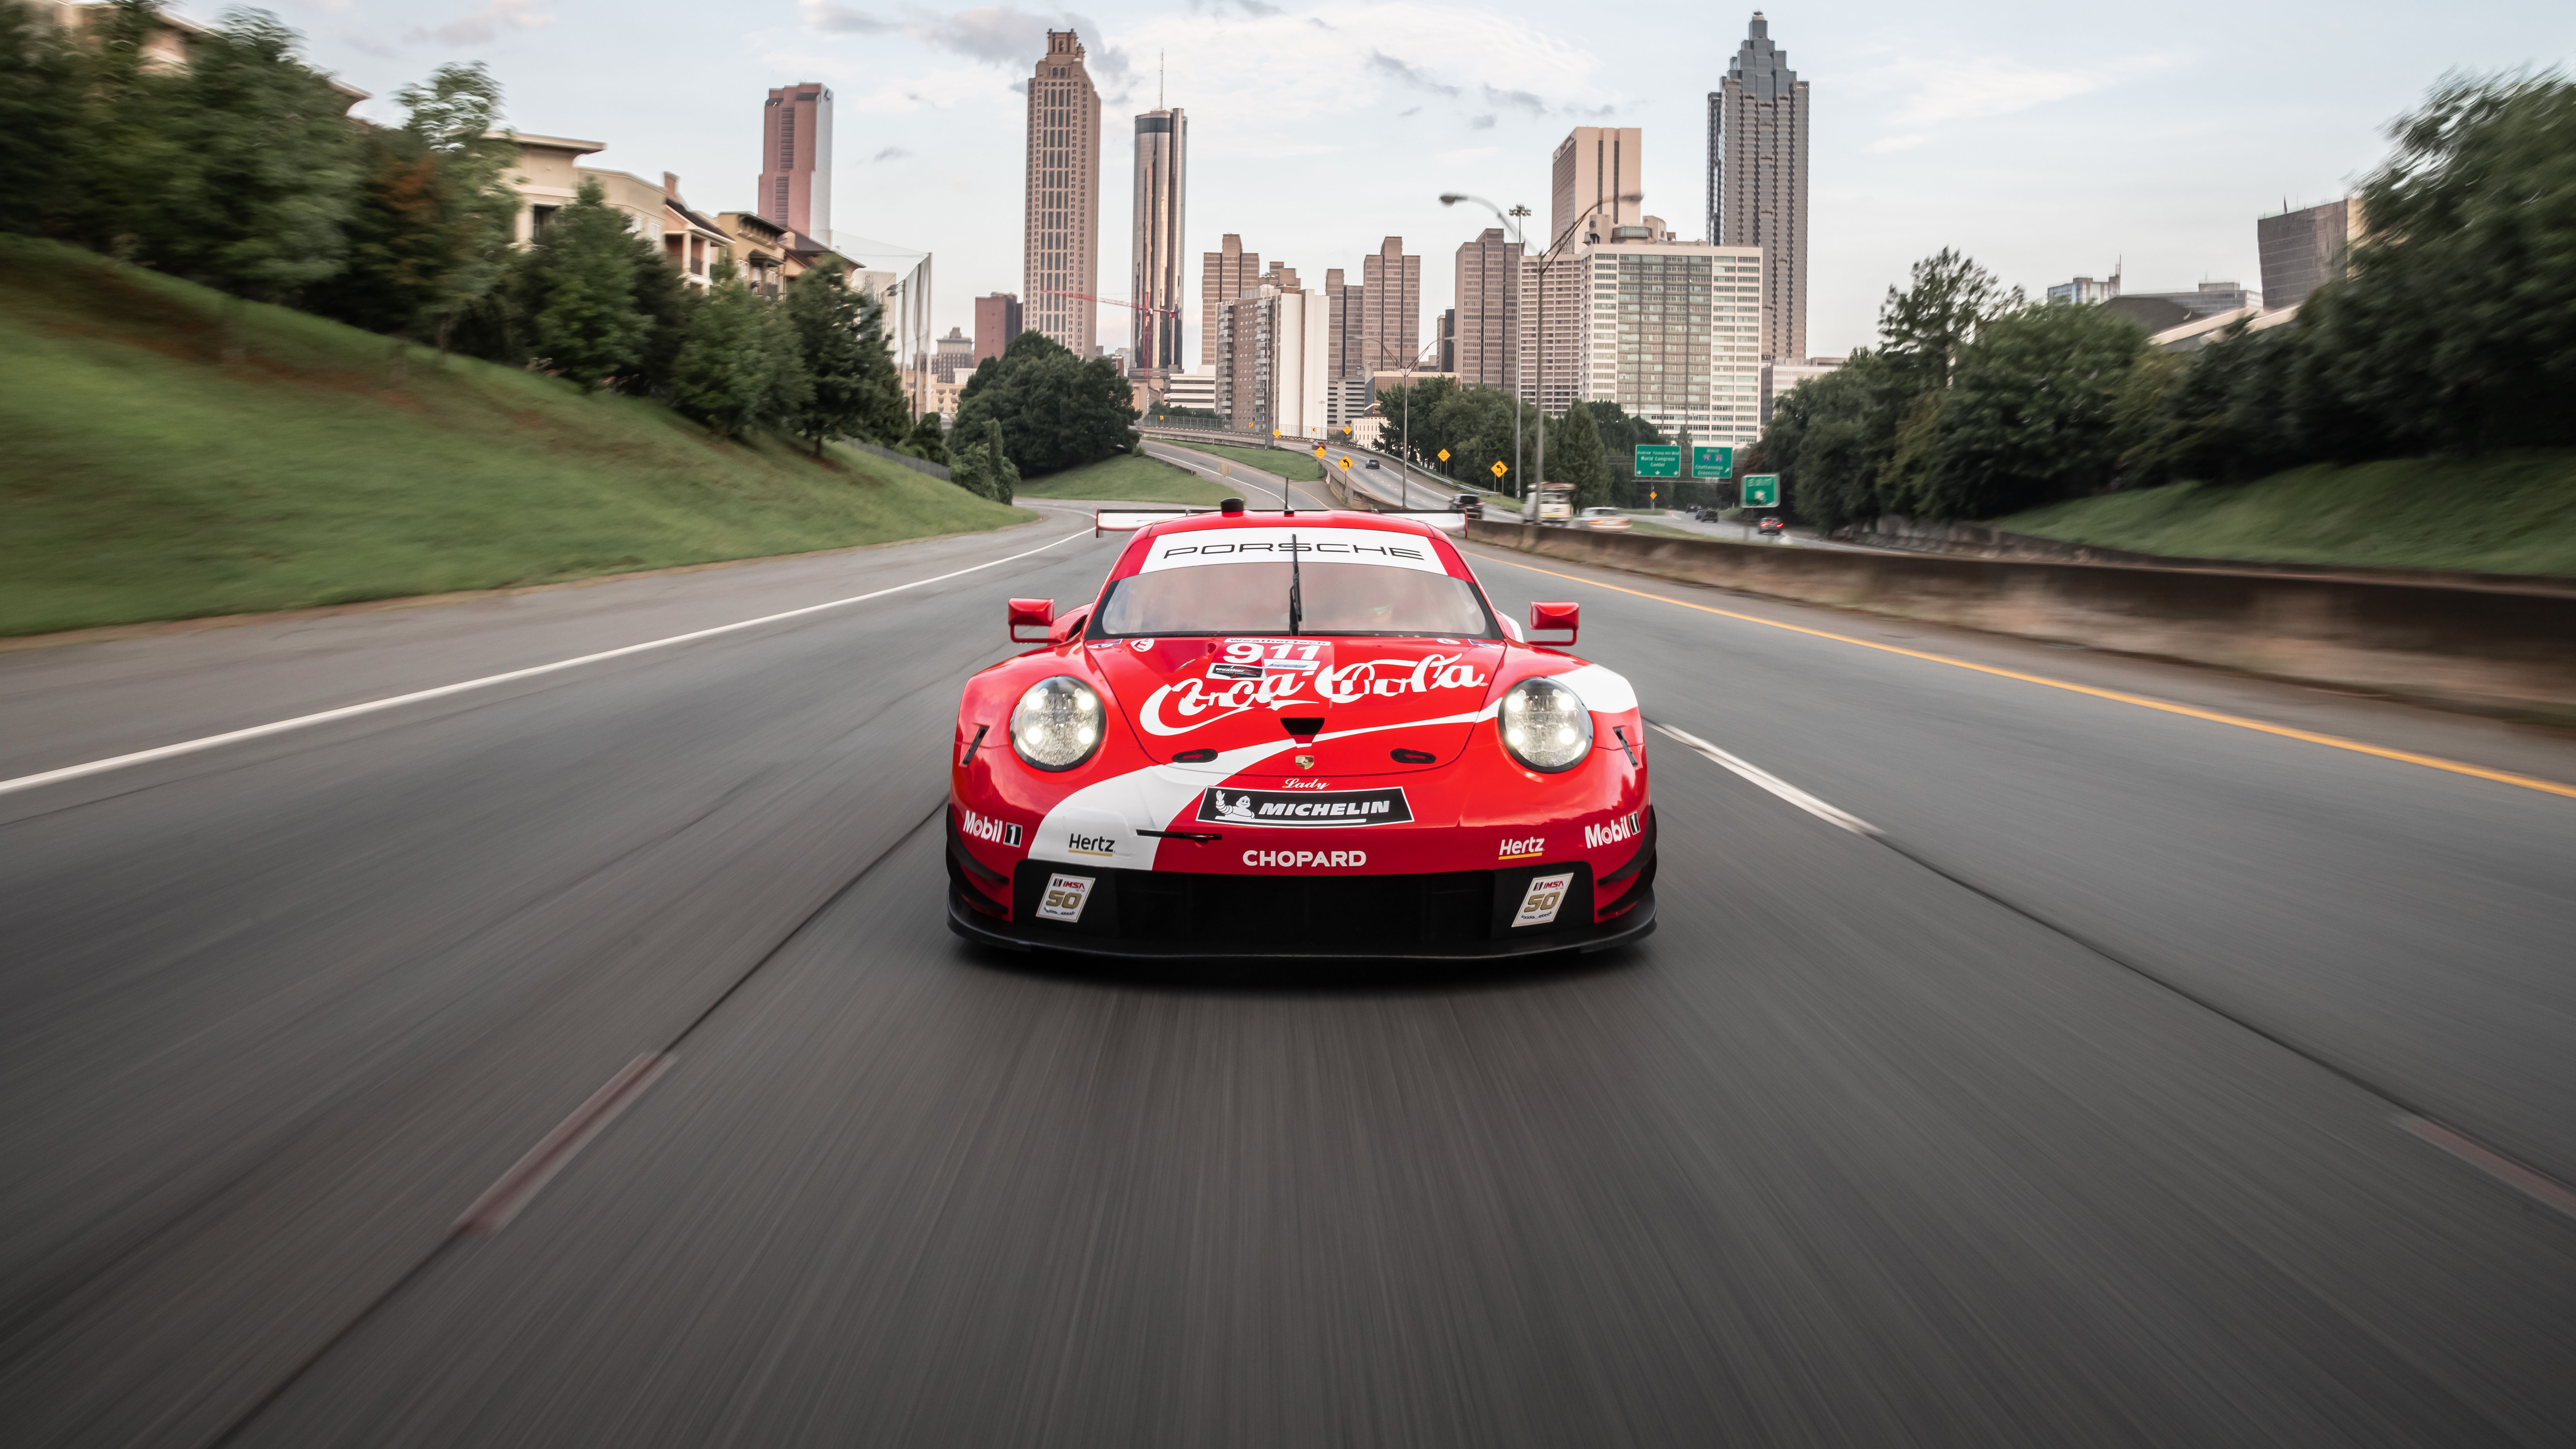 Porsche flies Coca-Cola design at Petit Le Mans